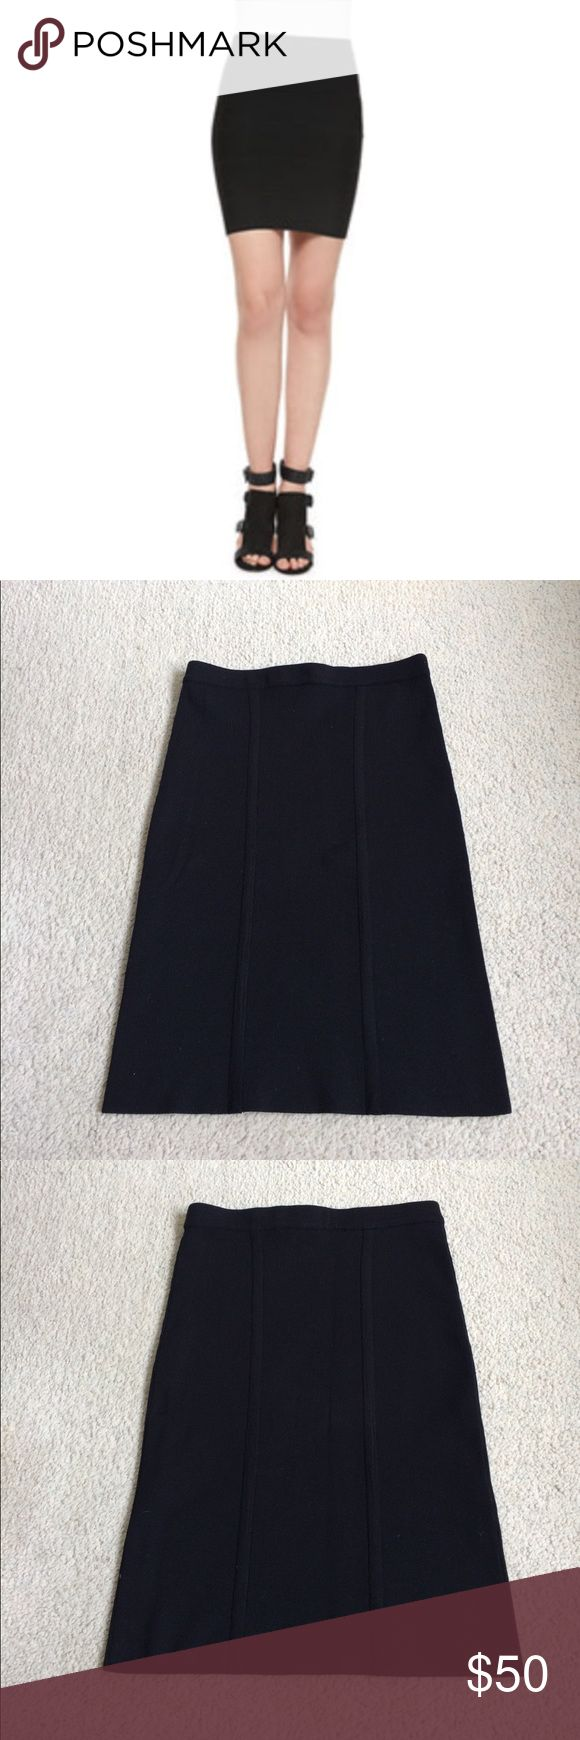 """EUC BCBGMAXAZRIA Knit Bodycon Mini Pencil Skirt Sexy Bodycon Knit skirt from BCBGMAXAZRIA. Thick and stretchy Knit with double ribbing down the center on each side. Waist 11"""" hips 13"""" (but also has a ton of stretch) length 19"""". 79% silk 19% nylon 2% spandex. Only worn a couple of times. Still in great condition! BCBGMaxAzria Skirts Mini"""